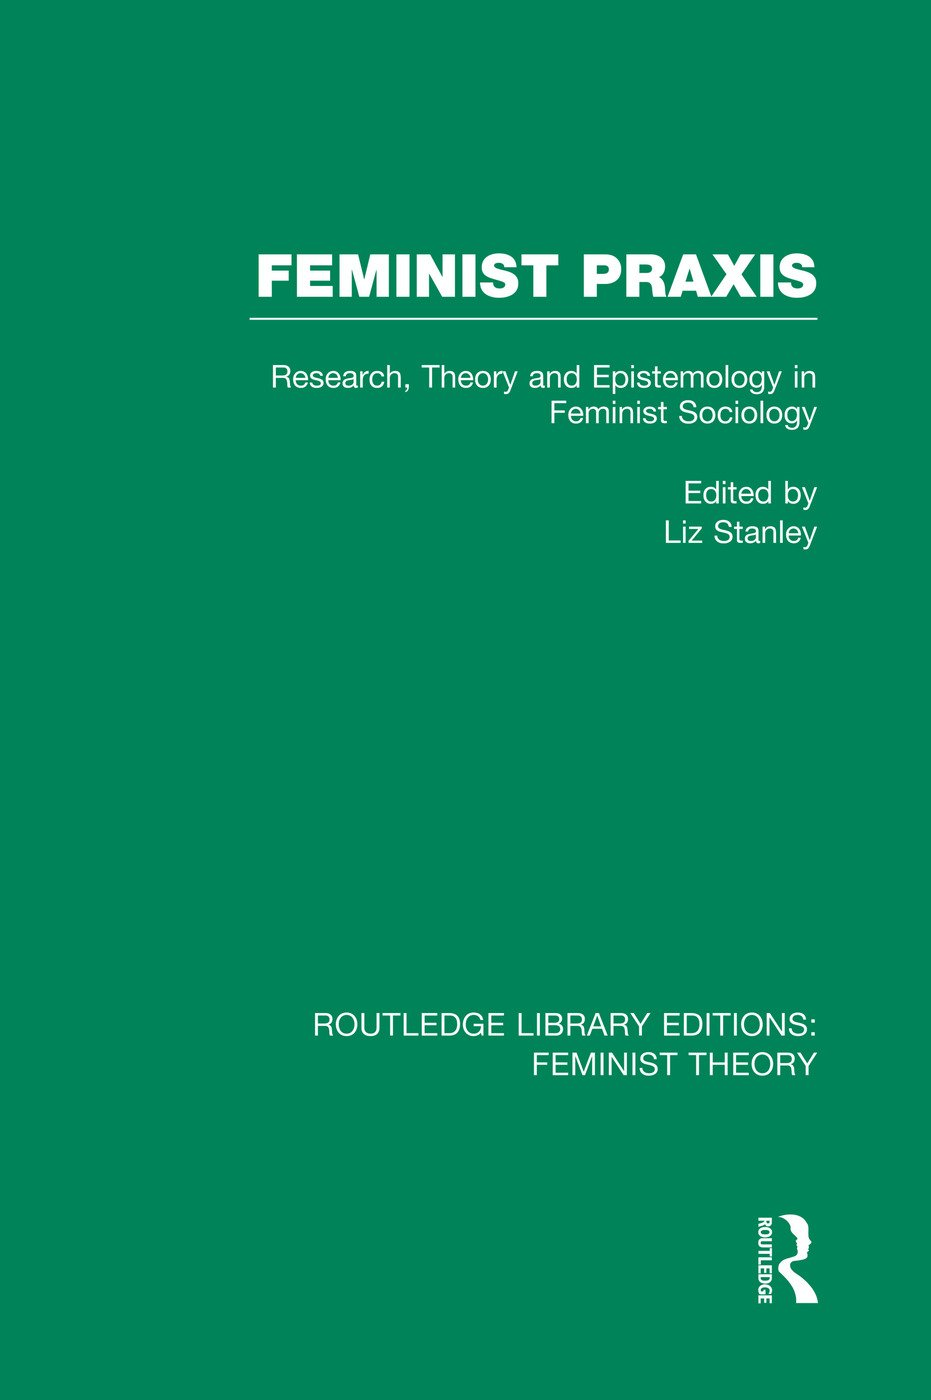 Feminist Praxis (RLE Feminist Theory): Research, Theory and Epistemology in Feminist Sociology book cover